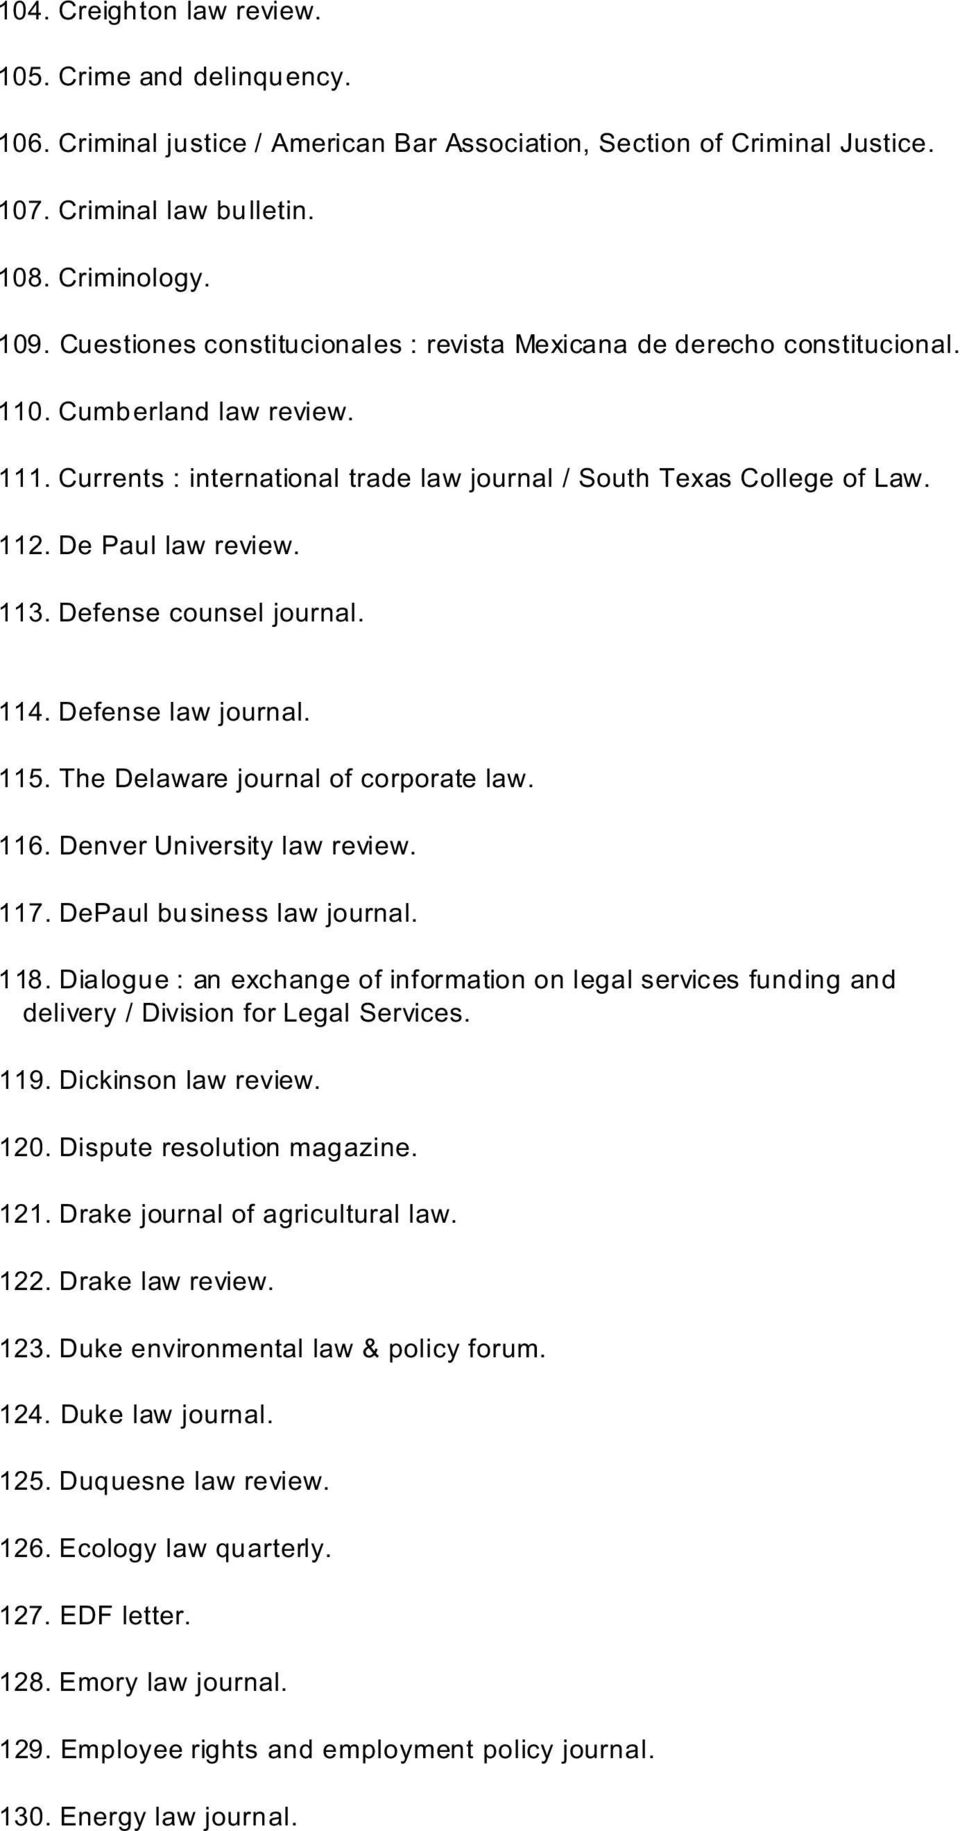 De Paul law review. 113. Defense counsel journal. 114. Defense law journal. 115. The Delaware journal of corporate law. 116. Denver University law review. 117. DePaul business law journal. 118.